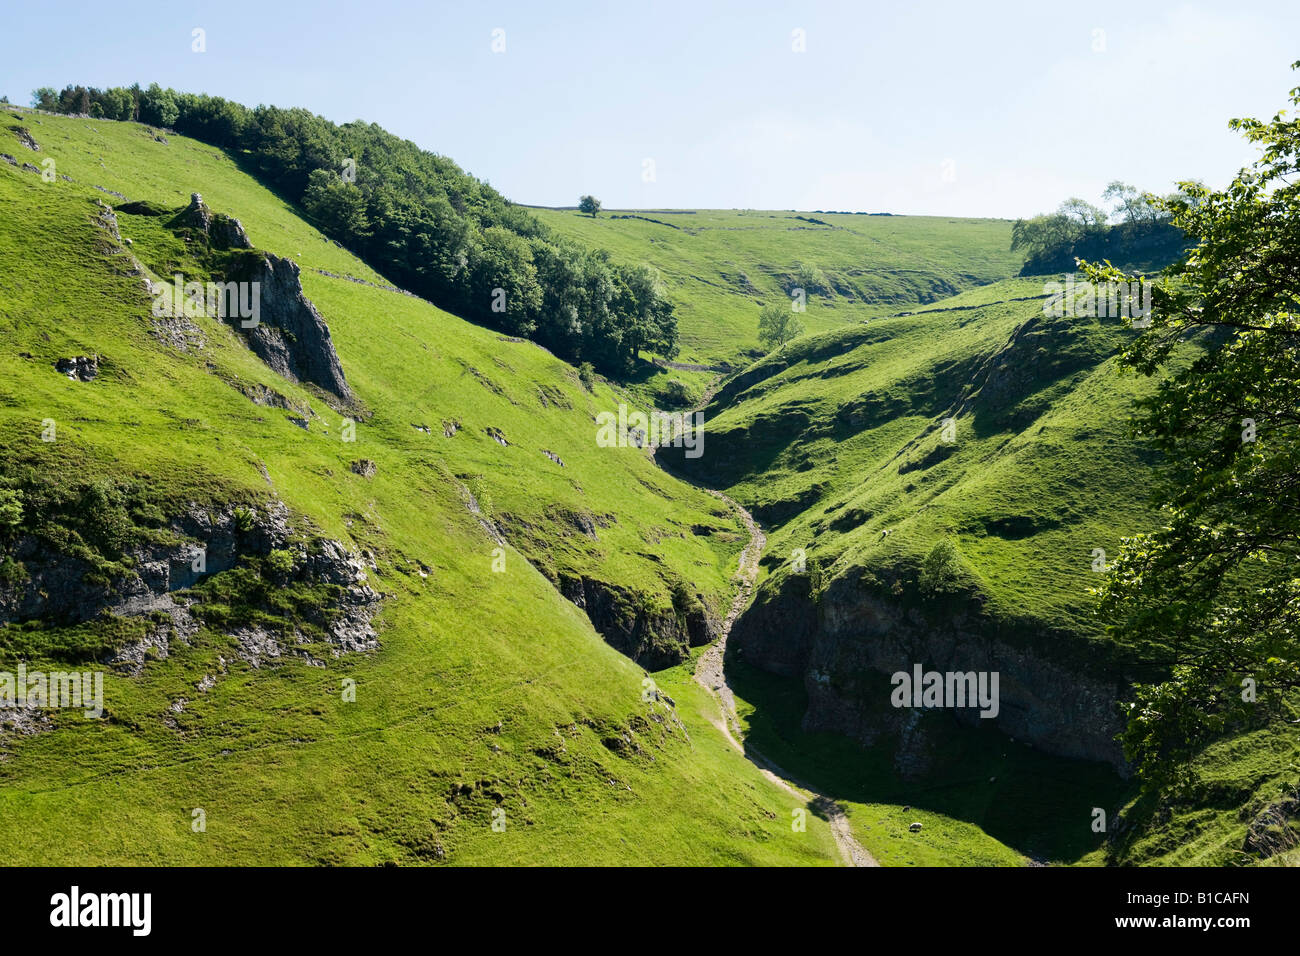 View from the rear walls of Peveril Castle, Castleton, Peak District, Derbyshire, England, United Kingdom - Stock Image